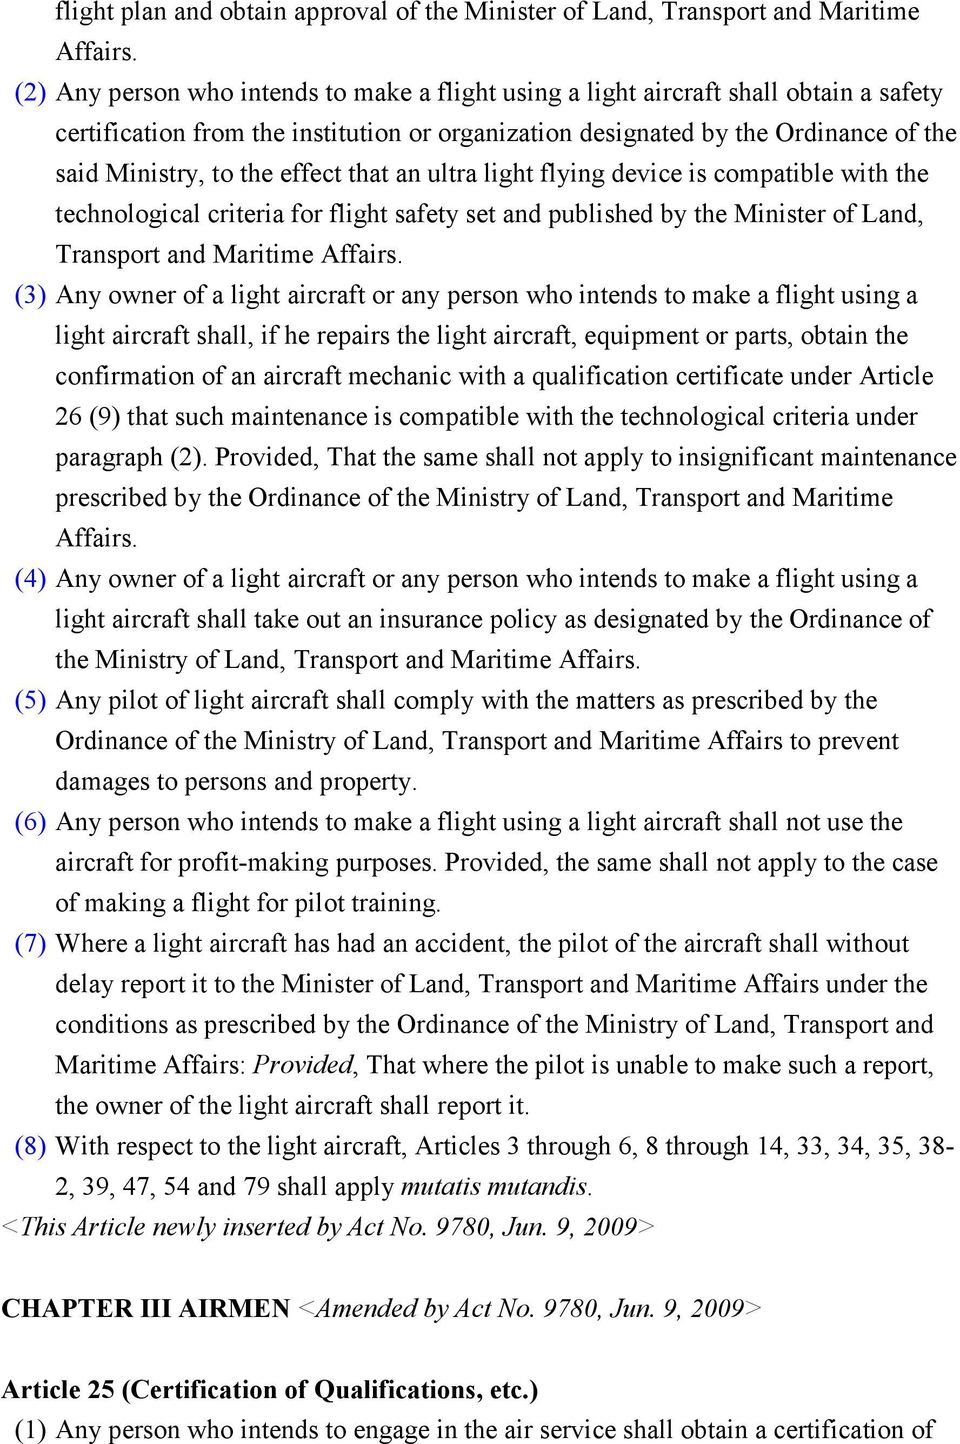 effect that an ultra light flying device is compatible with the technological criteria for flight safety set and published by the Minister of Land, Transport and Maritime Affairs.